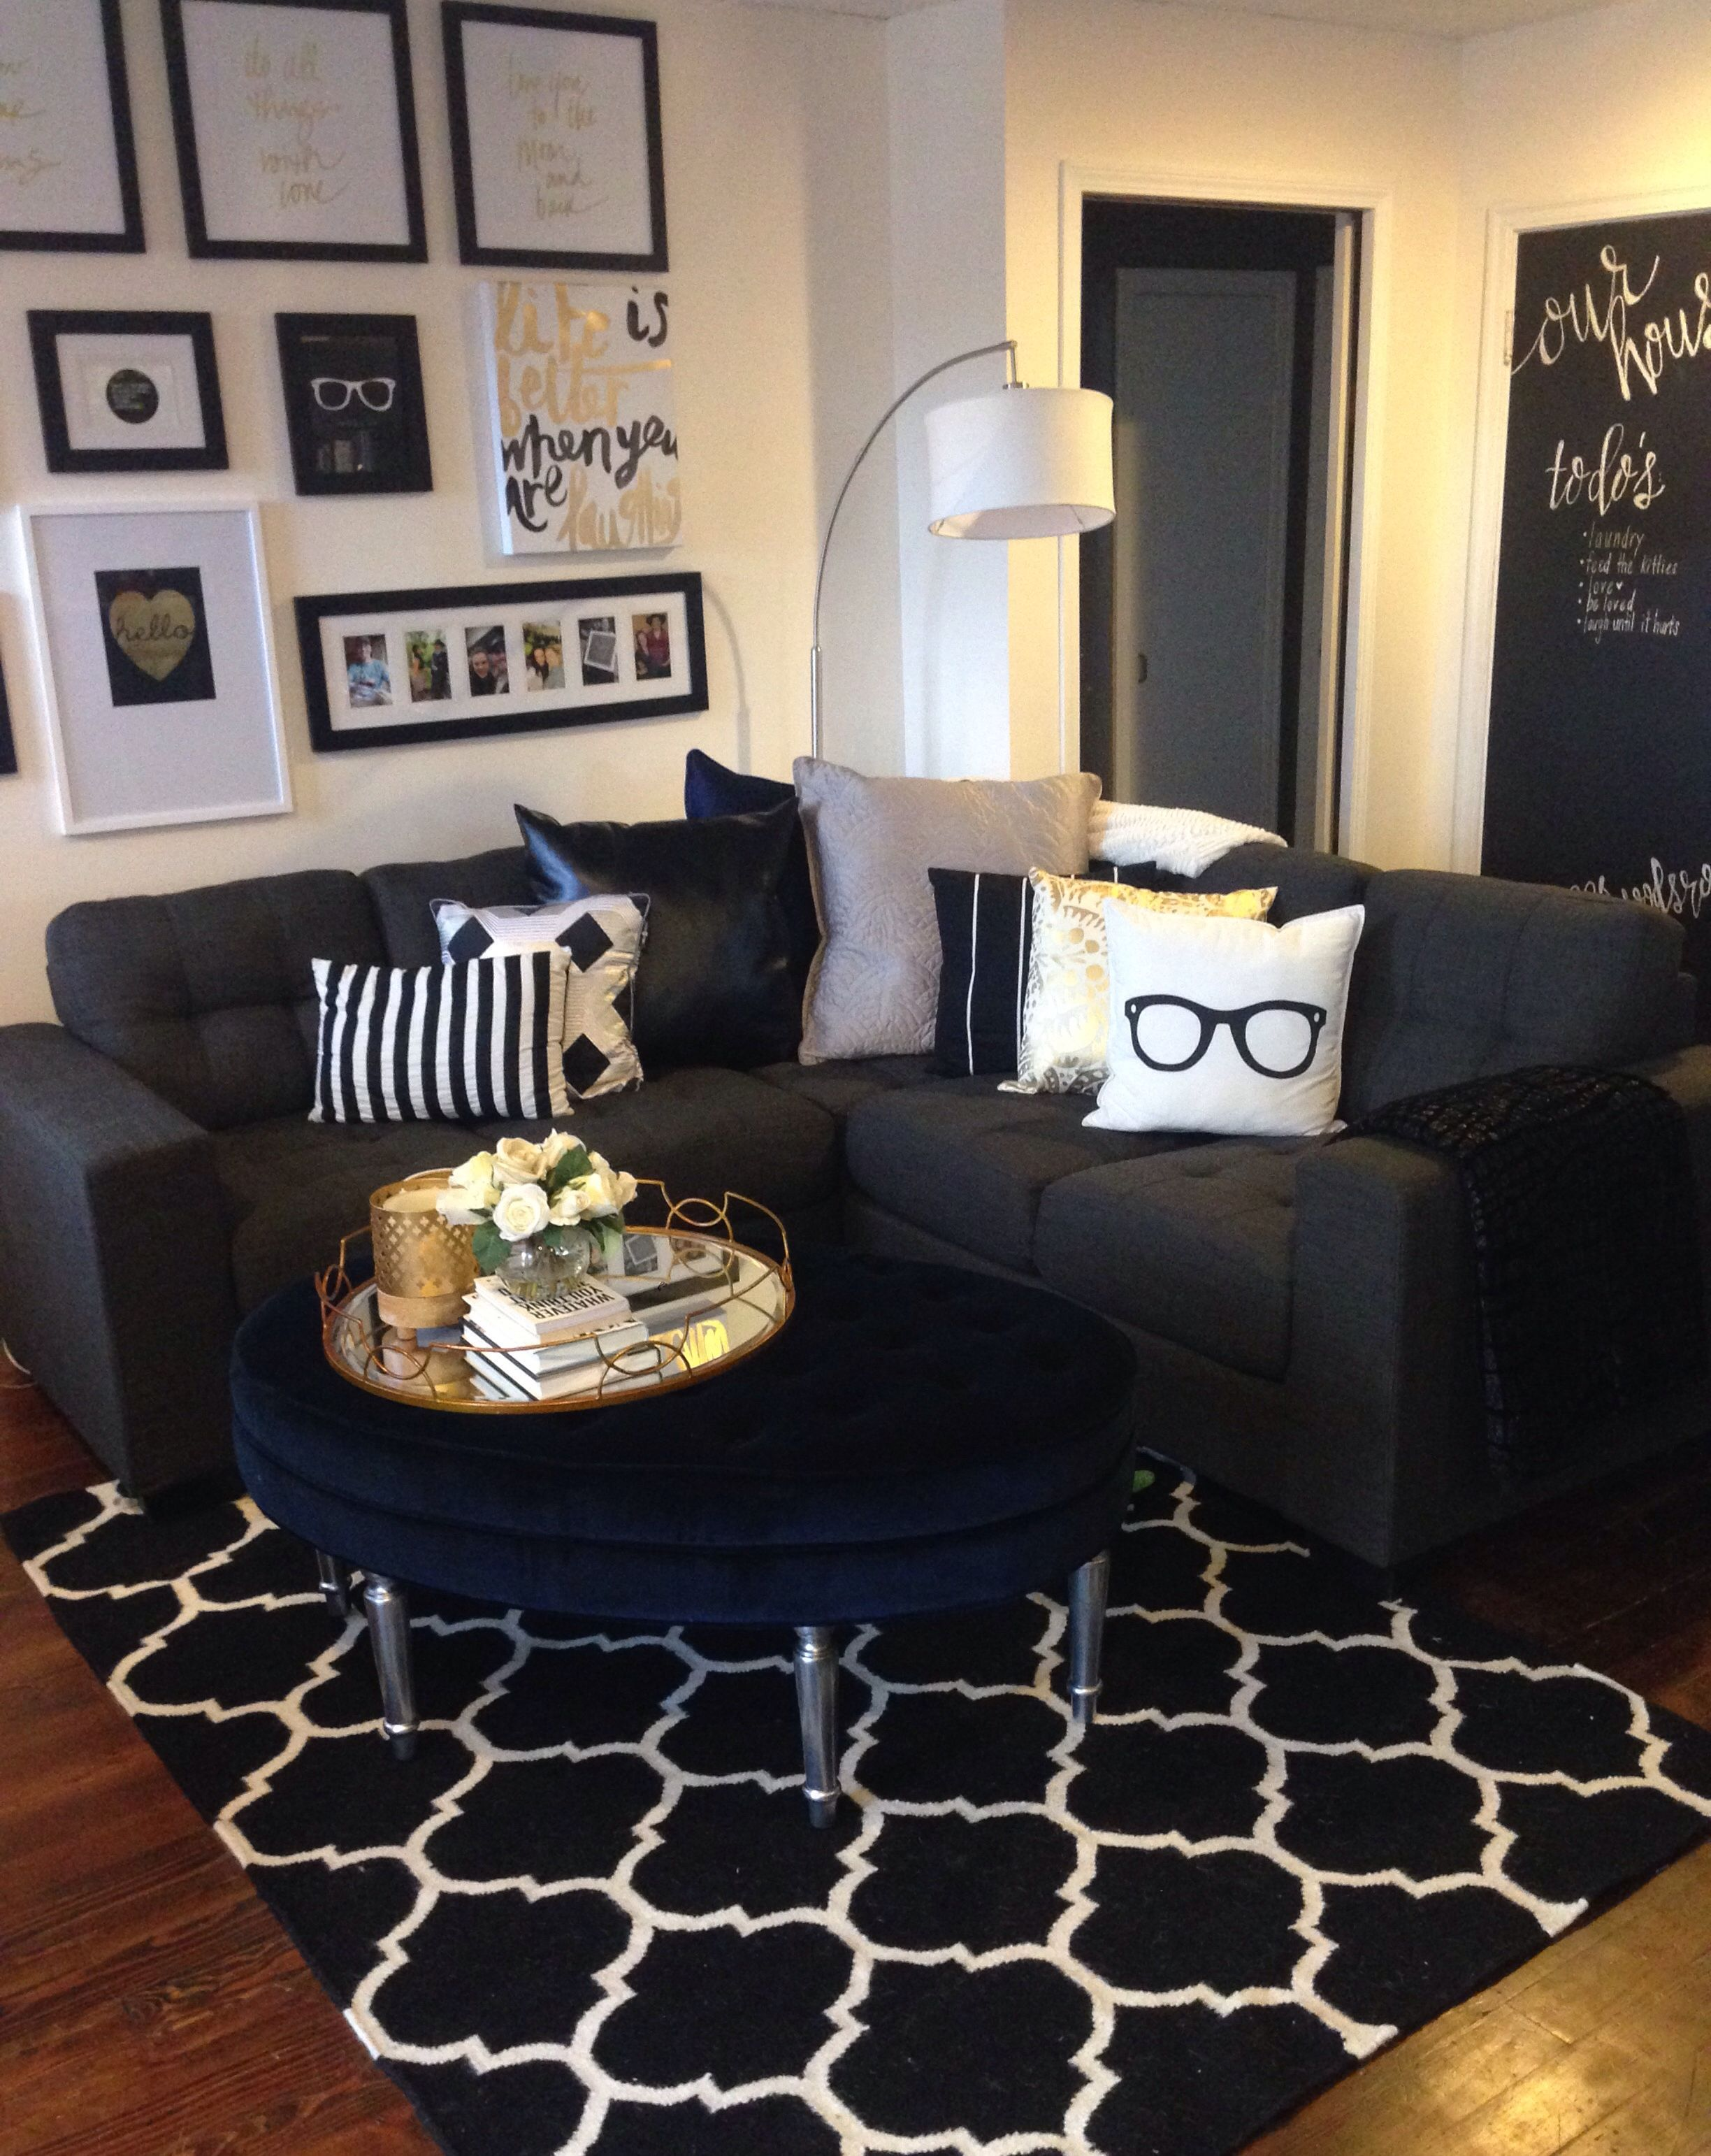 Mini Living Room Re Do Classic Black White And Gold With Pops Of Navy Gal Salas De Estar Douradas Sala De Estar De Apartamento Viver Em Apartamento Pequeno